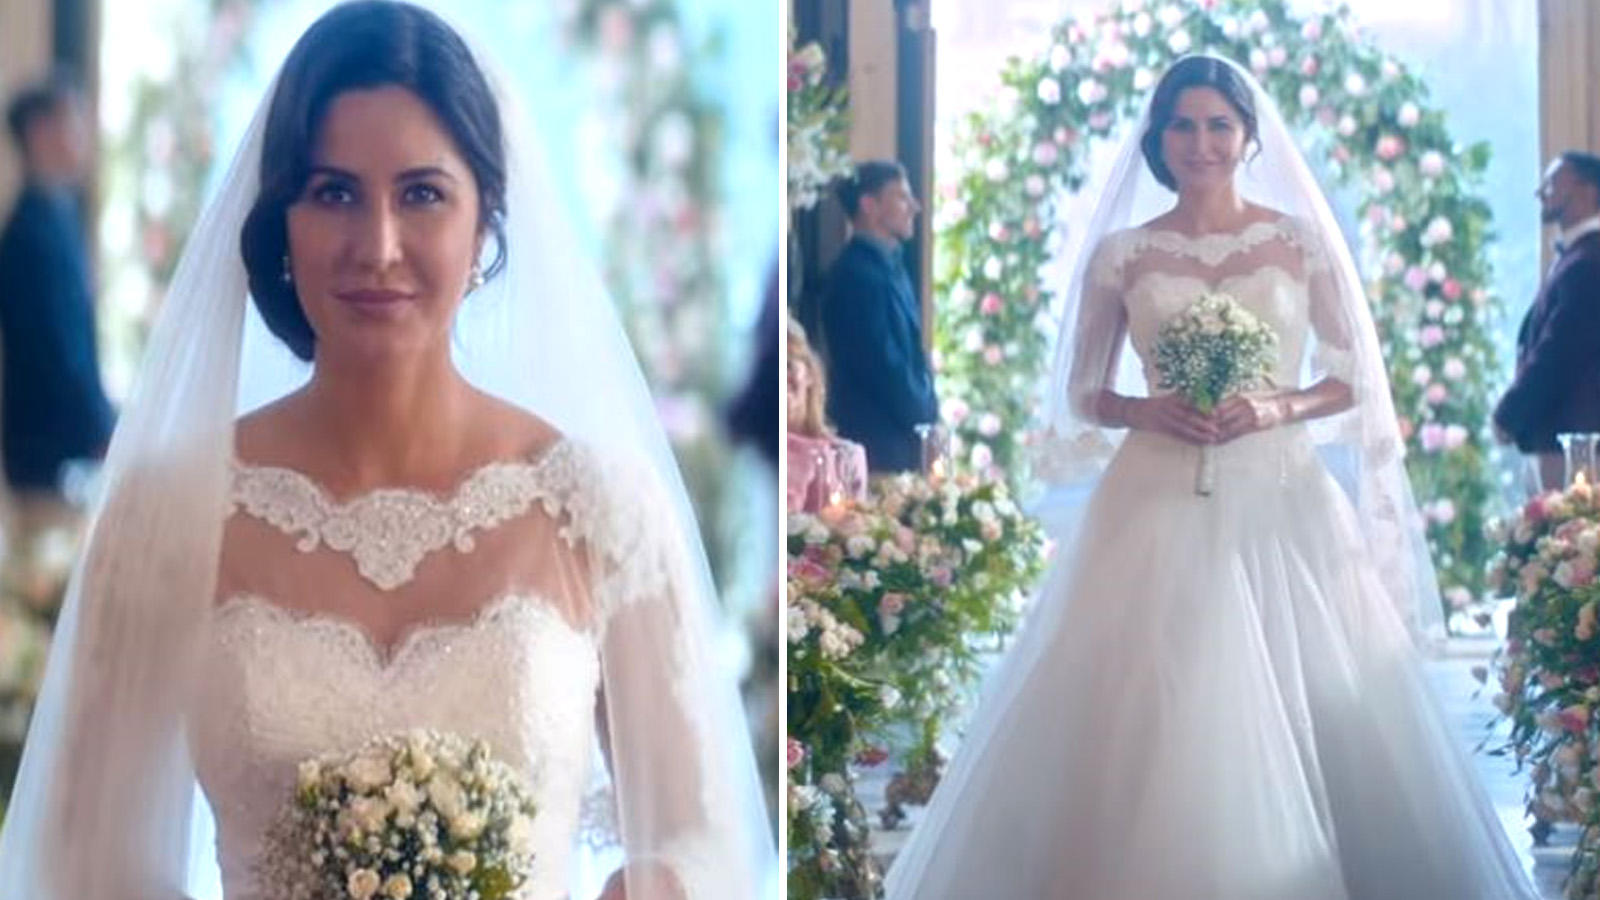 Katrina Kaif's bridal look from 'Bharat' has fans asking if she's getting married soon!